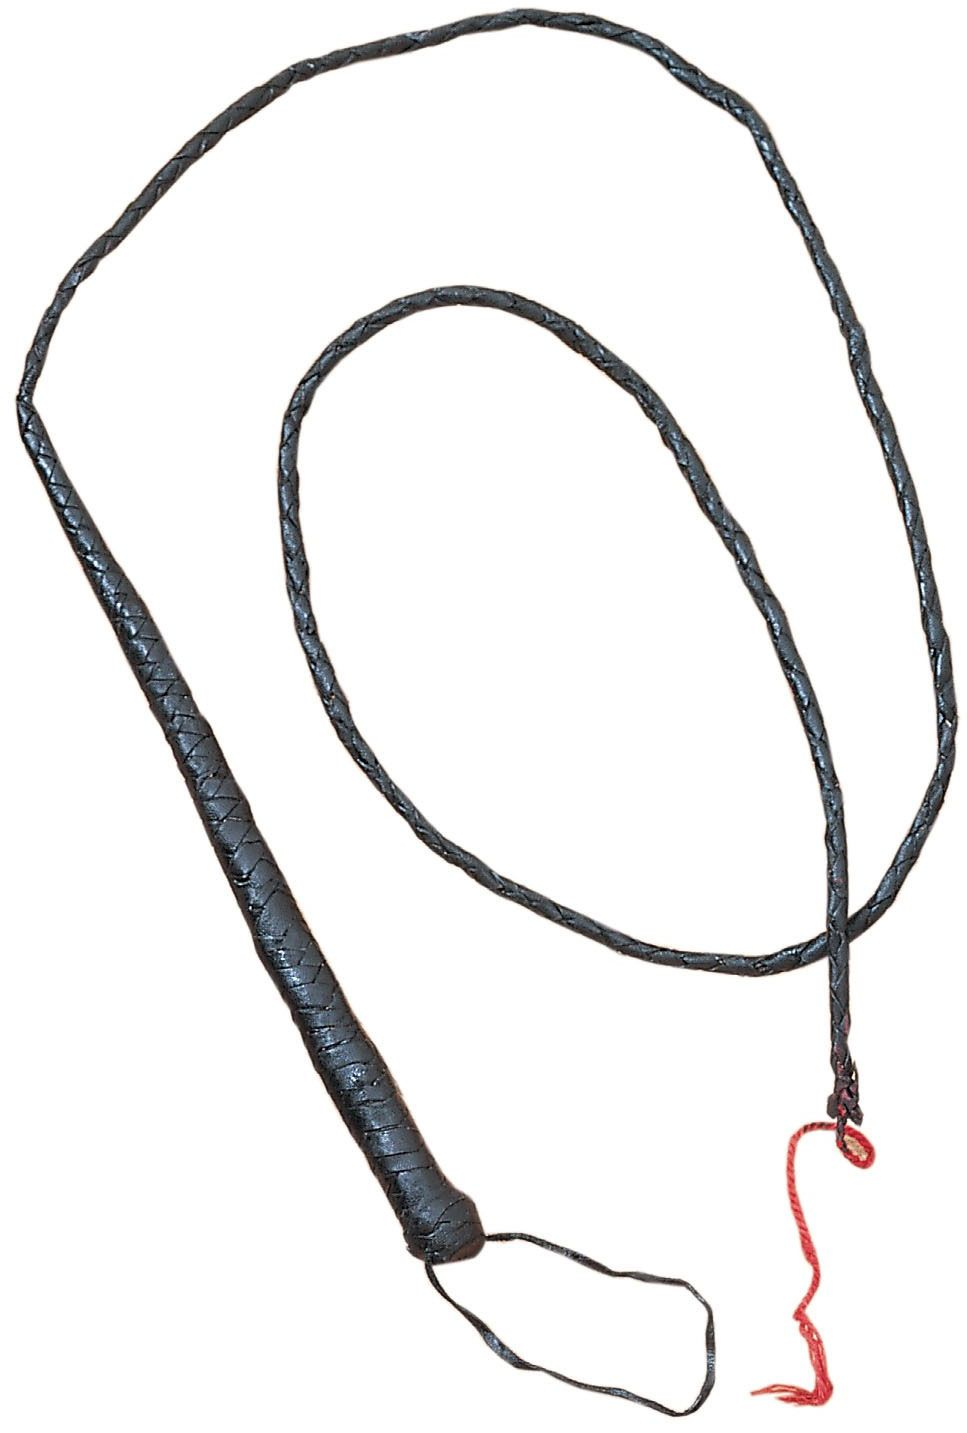 Black Leather Bullwhip 72 inch Overall - Display Quality Whip